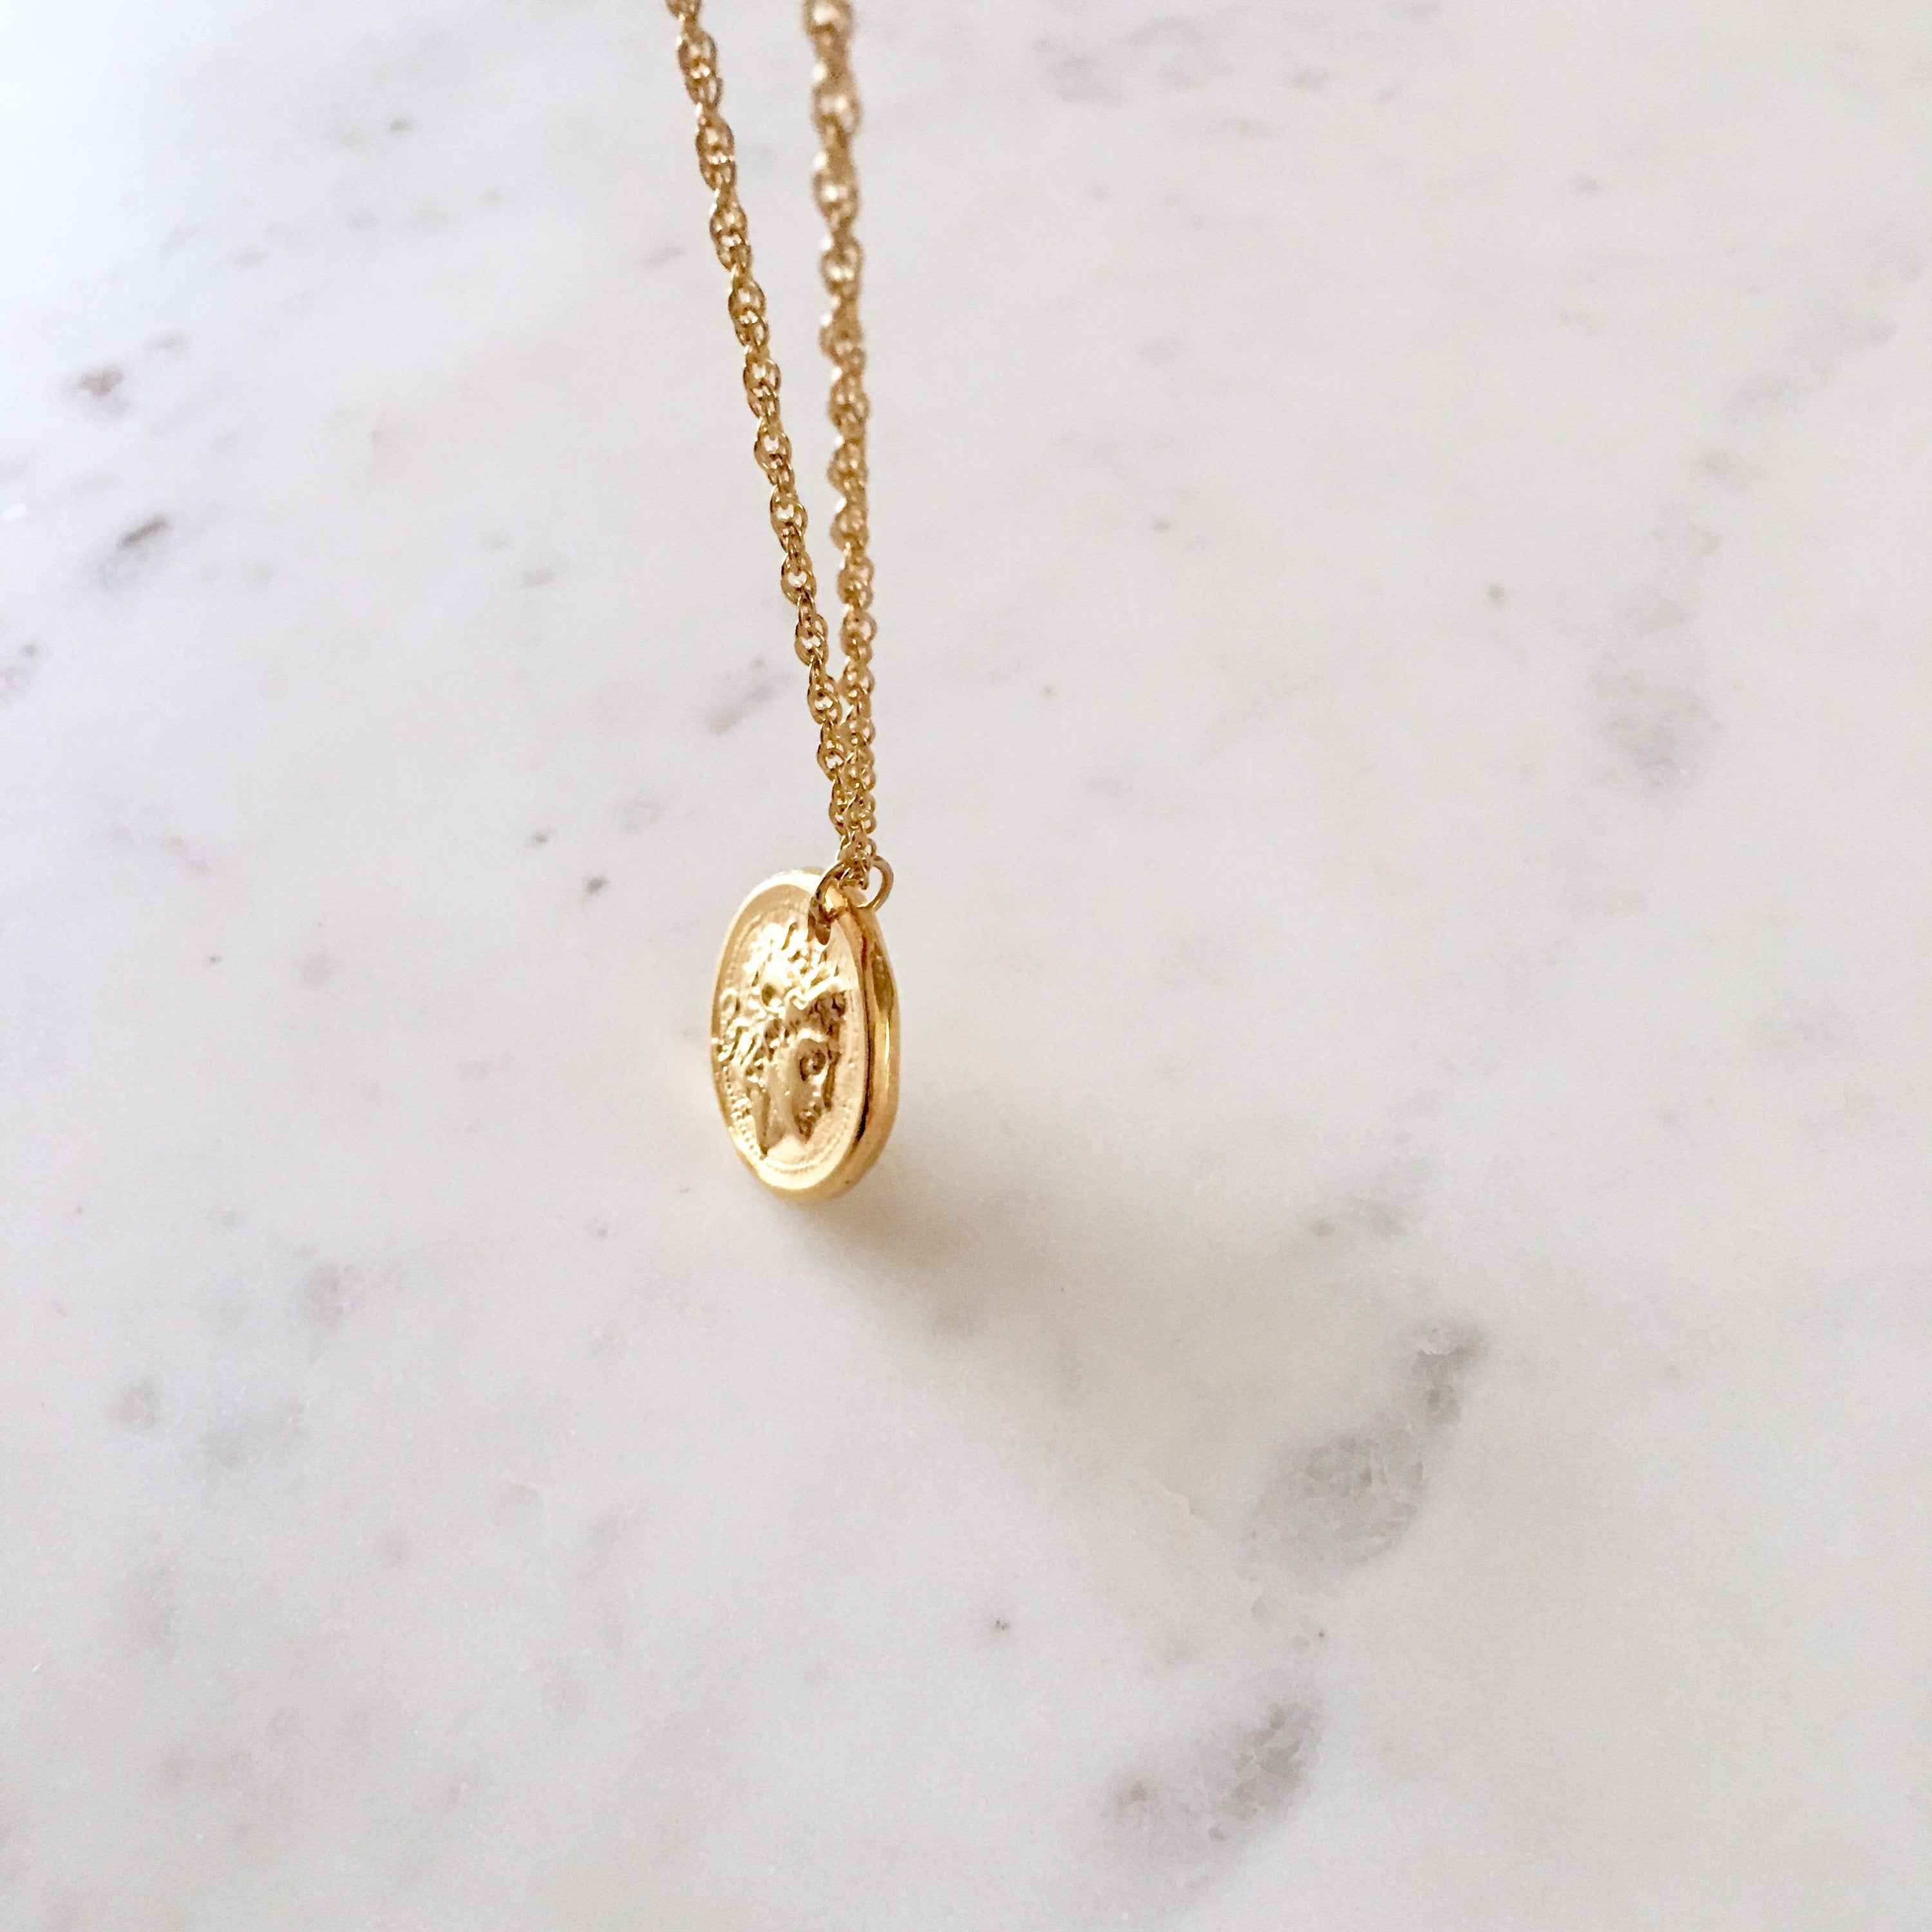 Alexander the Great Coin Necklace - Alexander Necklace, Greek Coin Necklace, Gold Coin Necklace, Alexander the Great Necklace |GPN00012